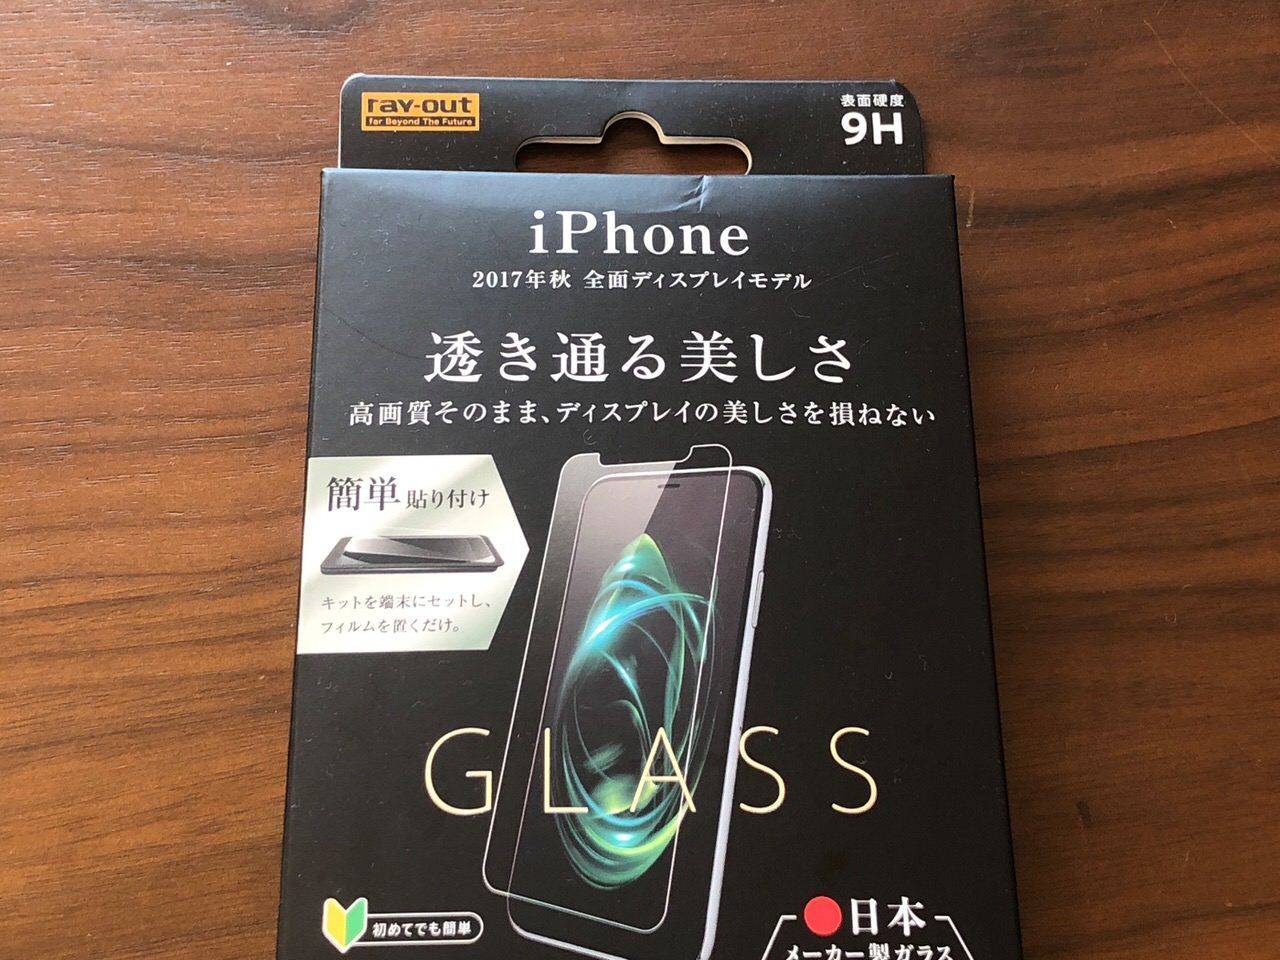 Iphone x firstimpresion 0600